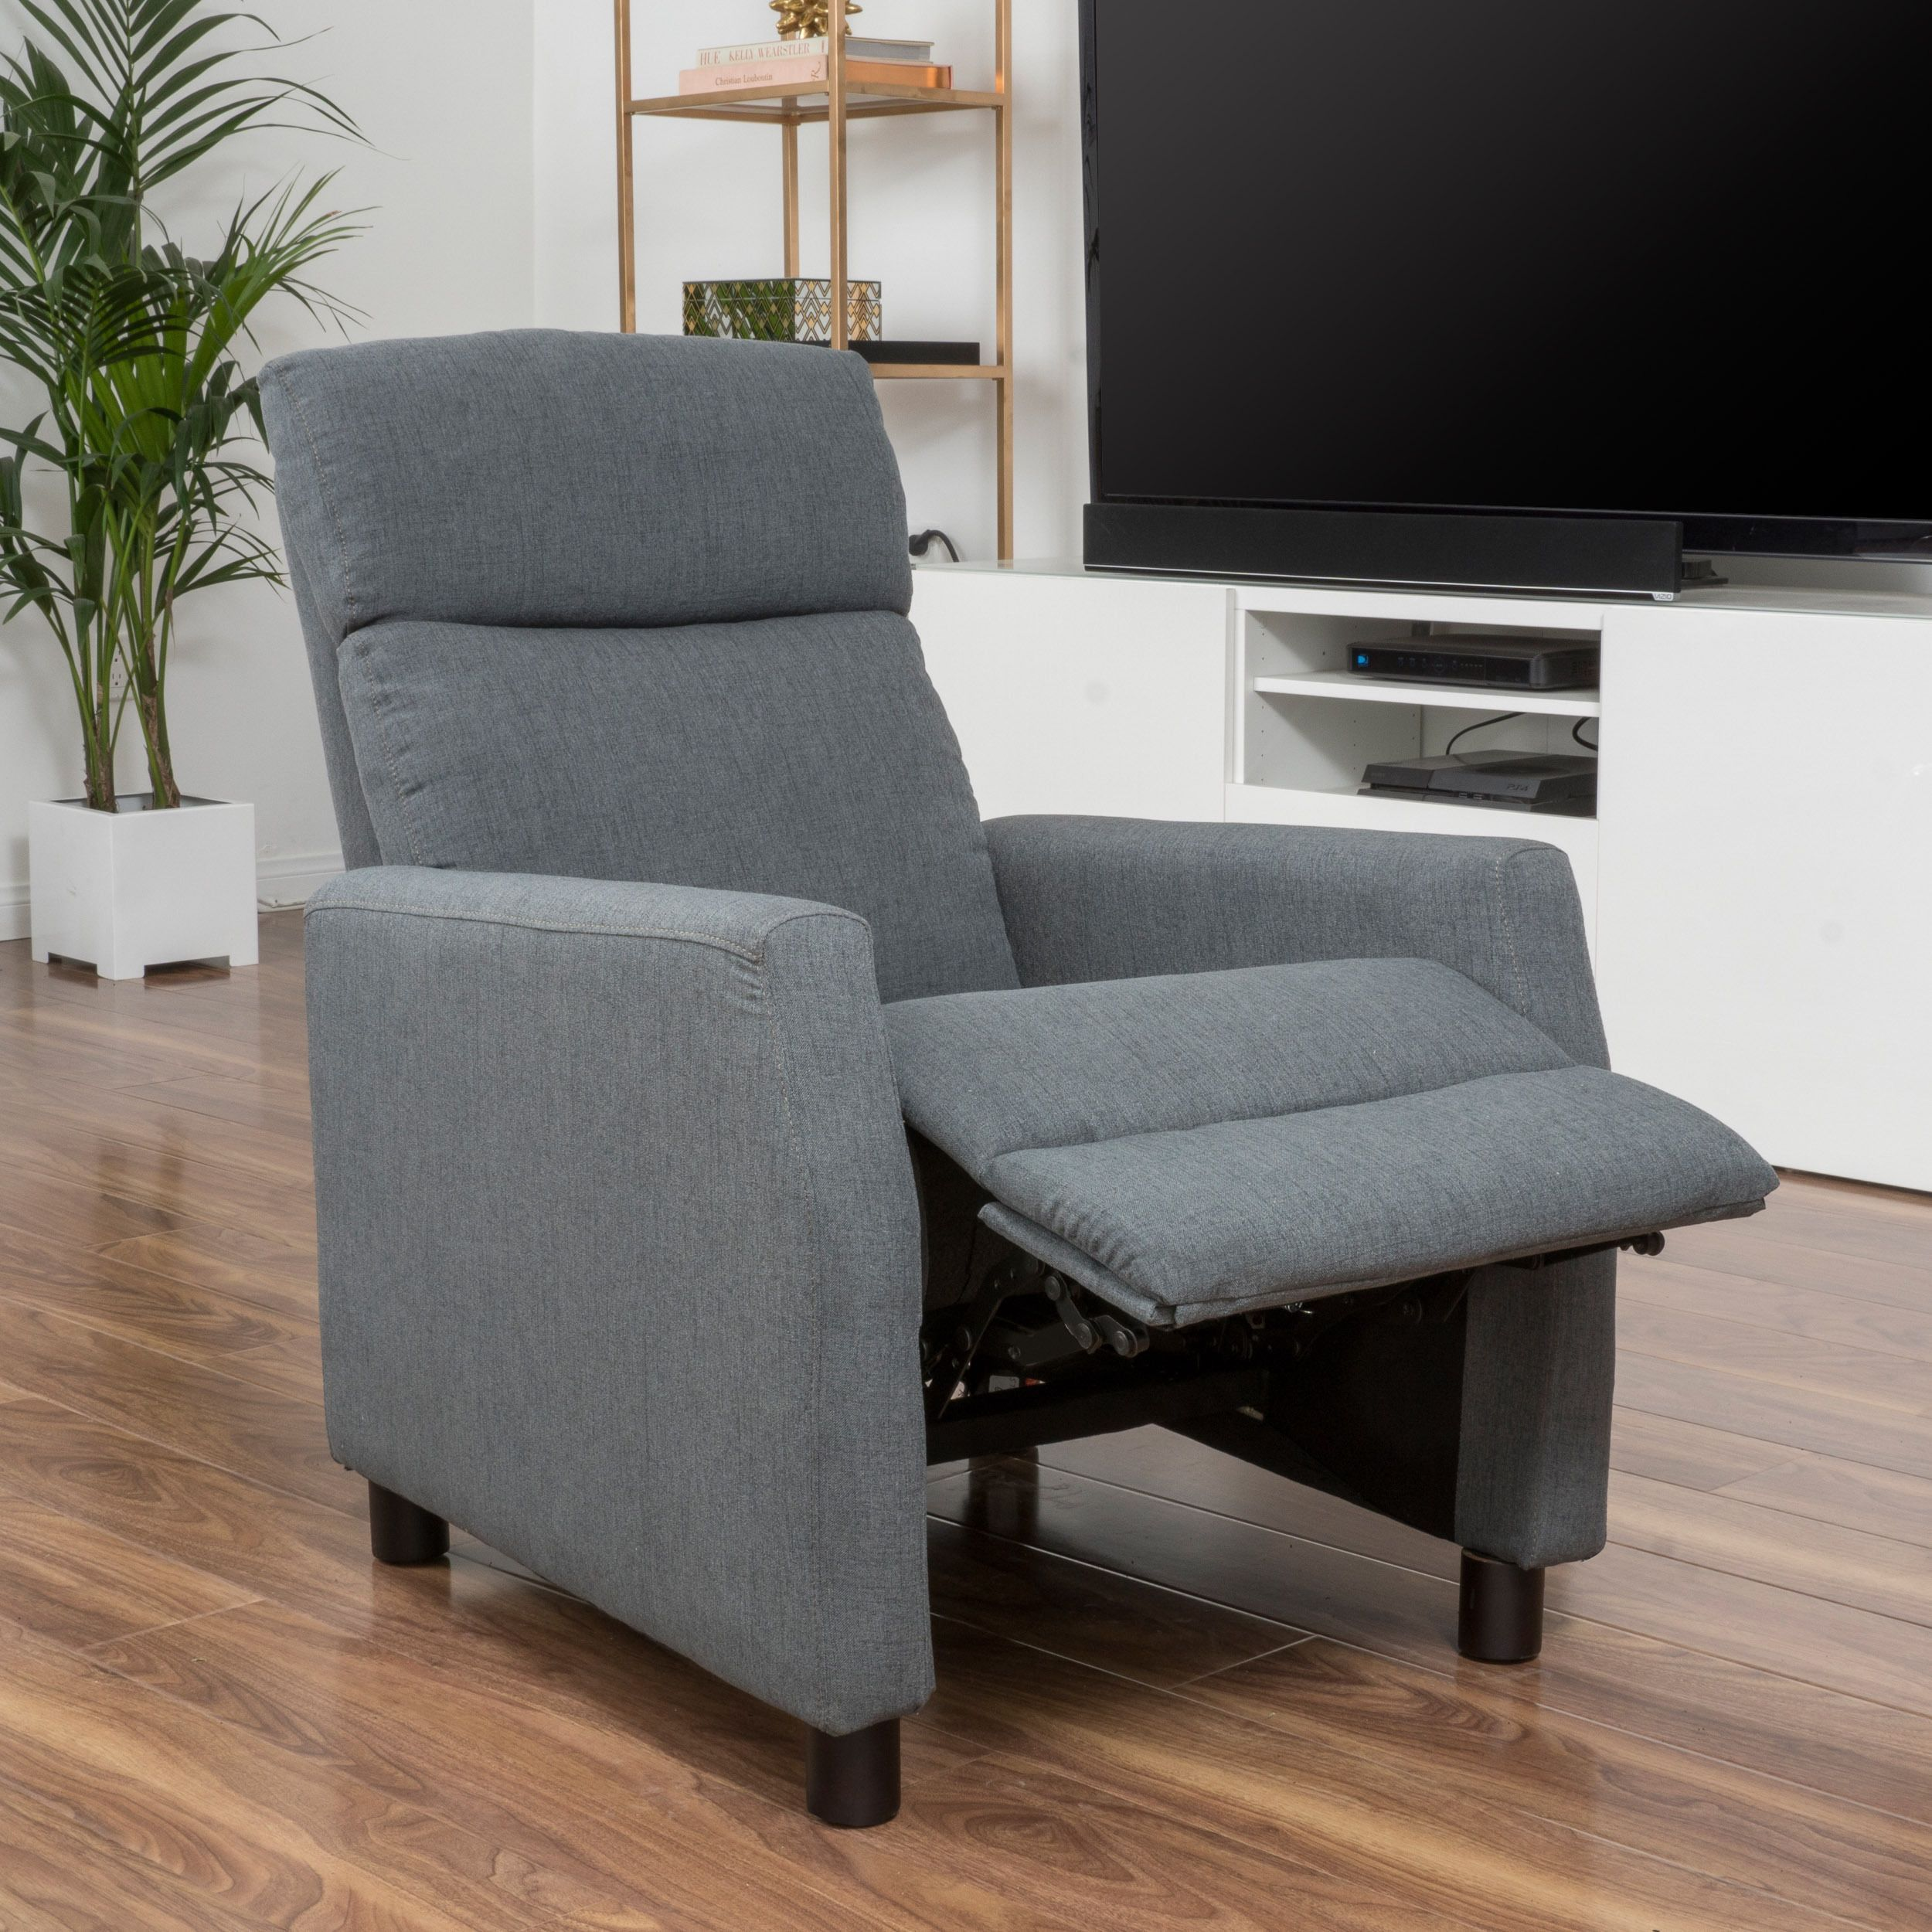 Tabahri Fabric Recliner Club Chair By Christopher Knight